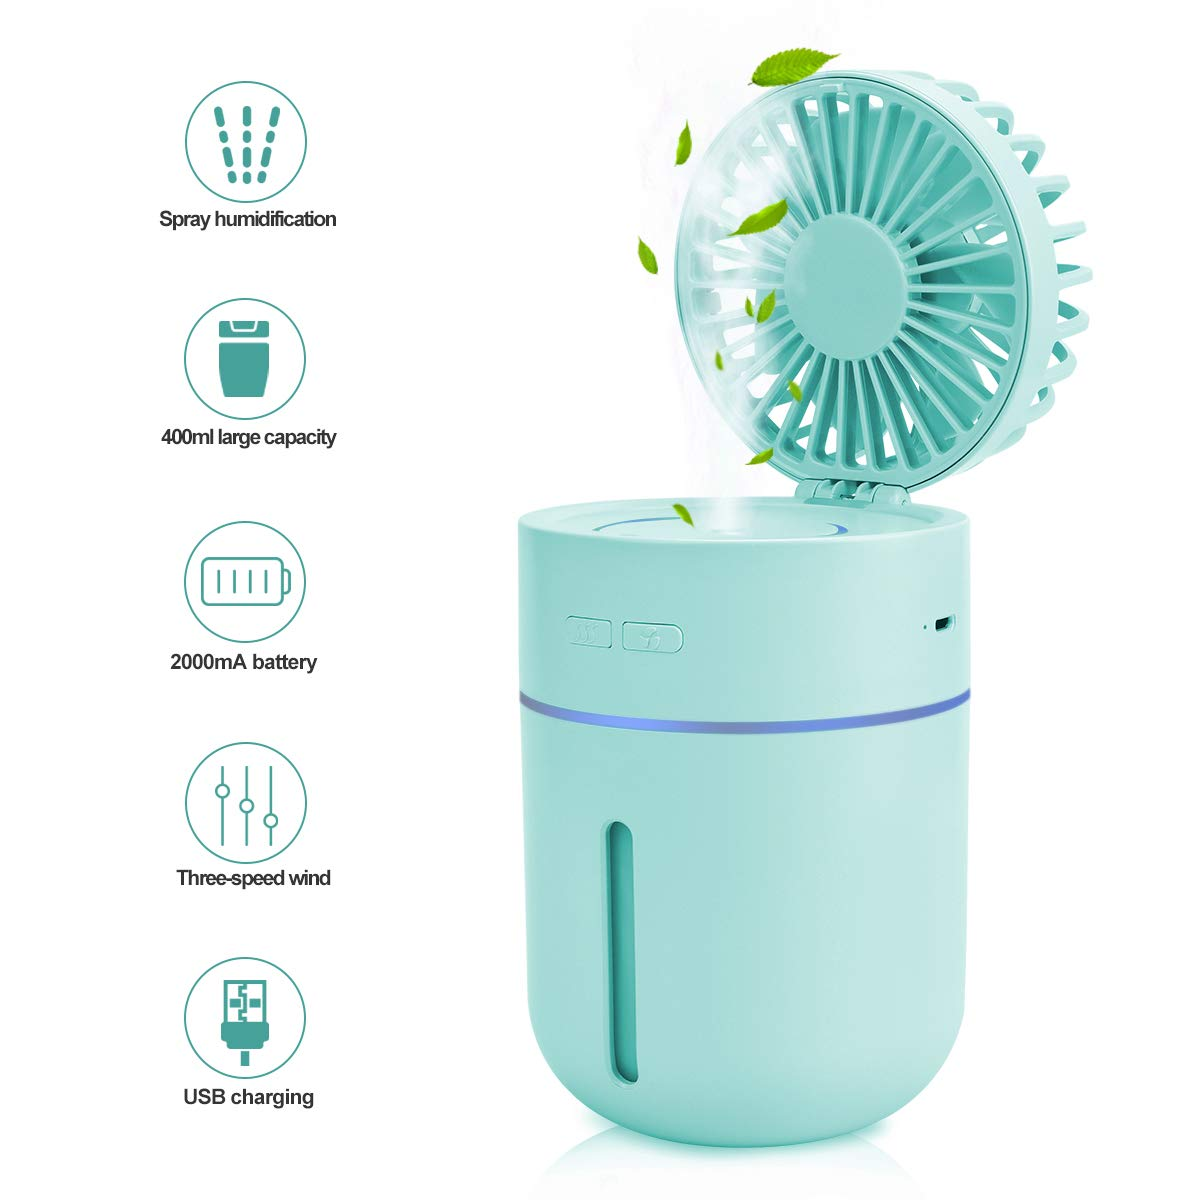 EVILTO Mini Humidifiers for Office Bedroom – Portable 2 in 1 USB Spray Humidifiers with Fan, 400ML Water Tank Lasts Up to 10 Hours, 2 Mist Modes with 7 Colors LED Lights for Kids, Home, Travel, Car.